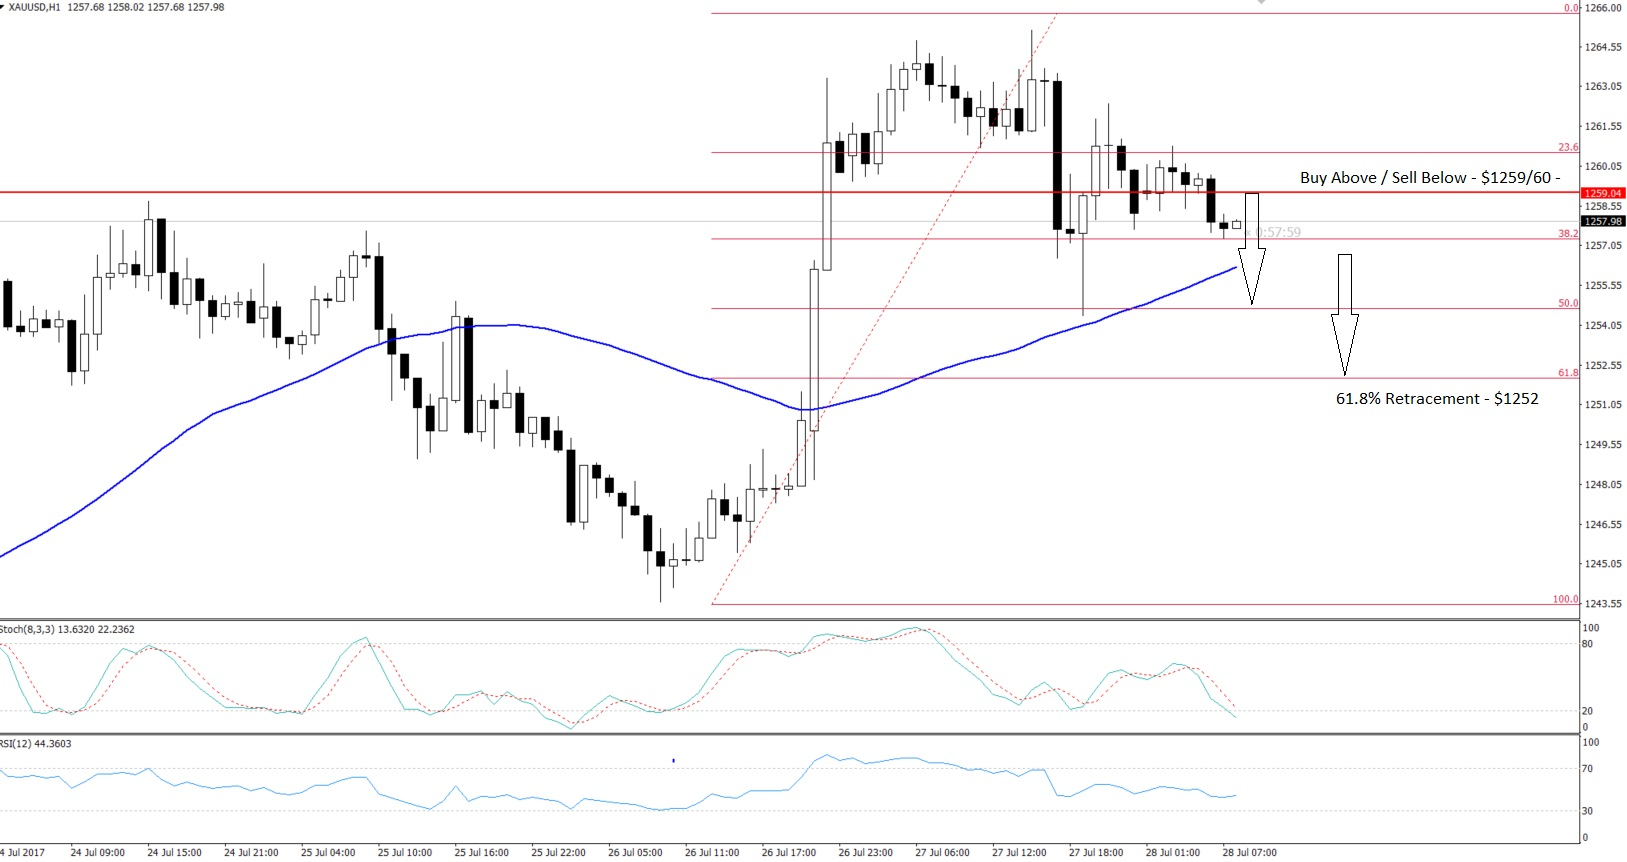 Gold - Hourly Chart - Retracement